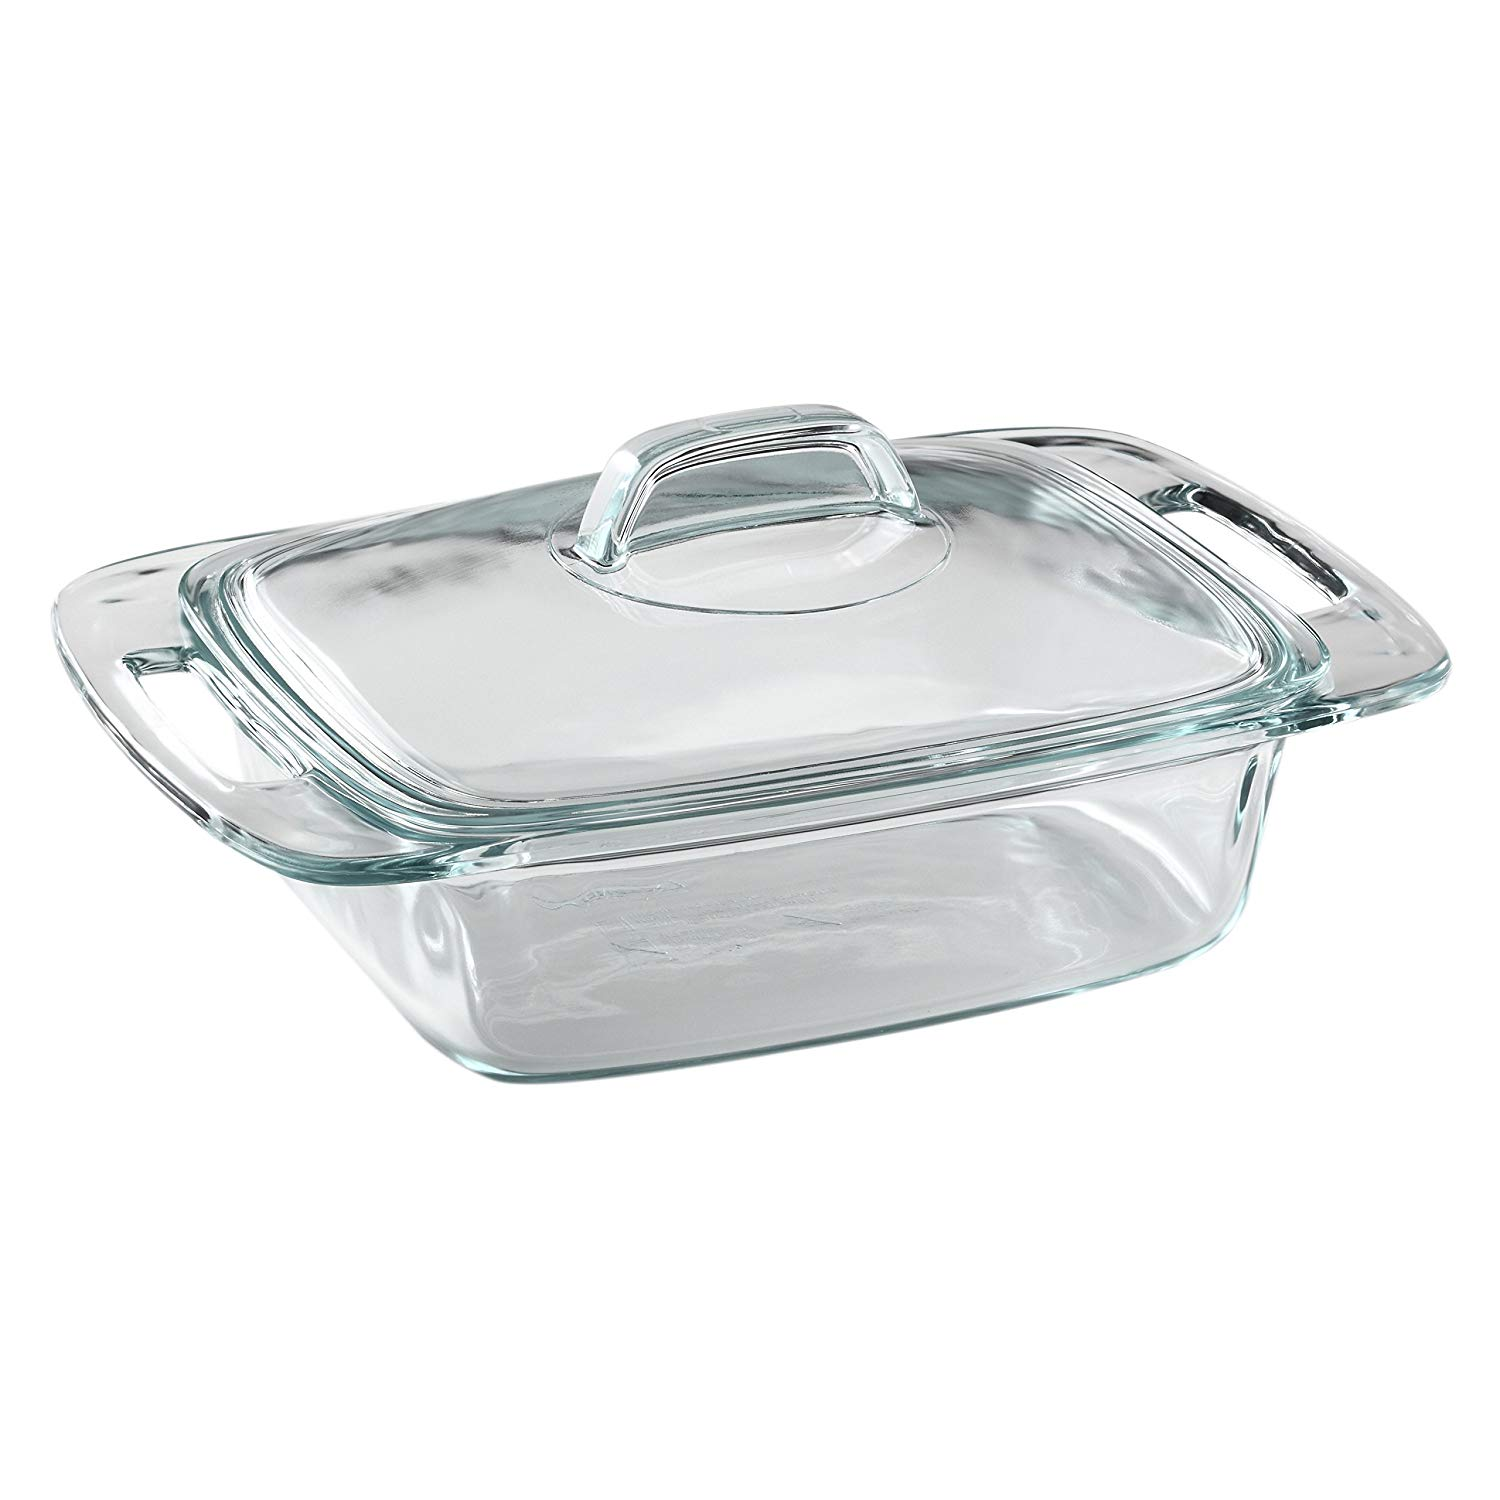 Pyrex easy grab 2-quart casserole dish with lid